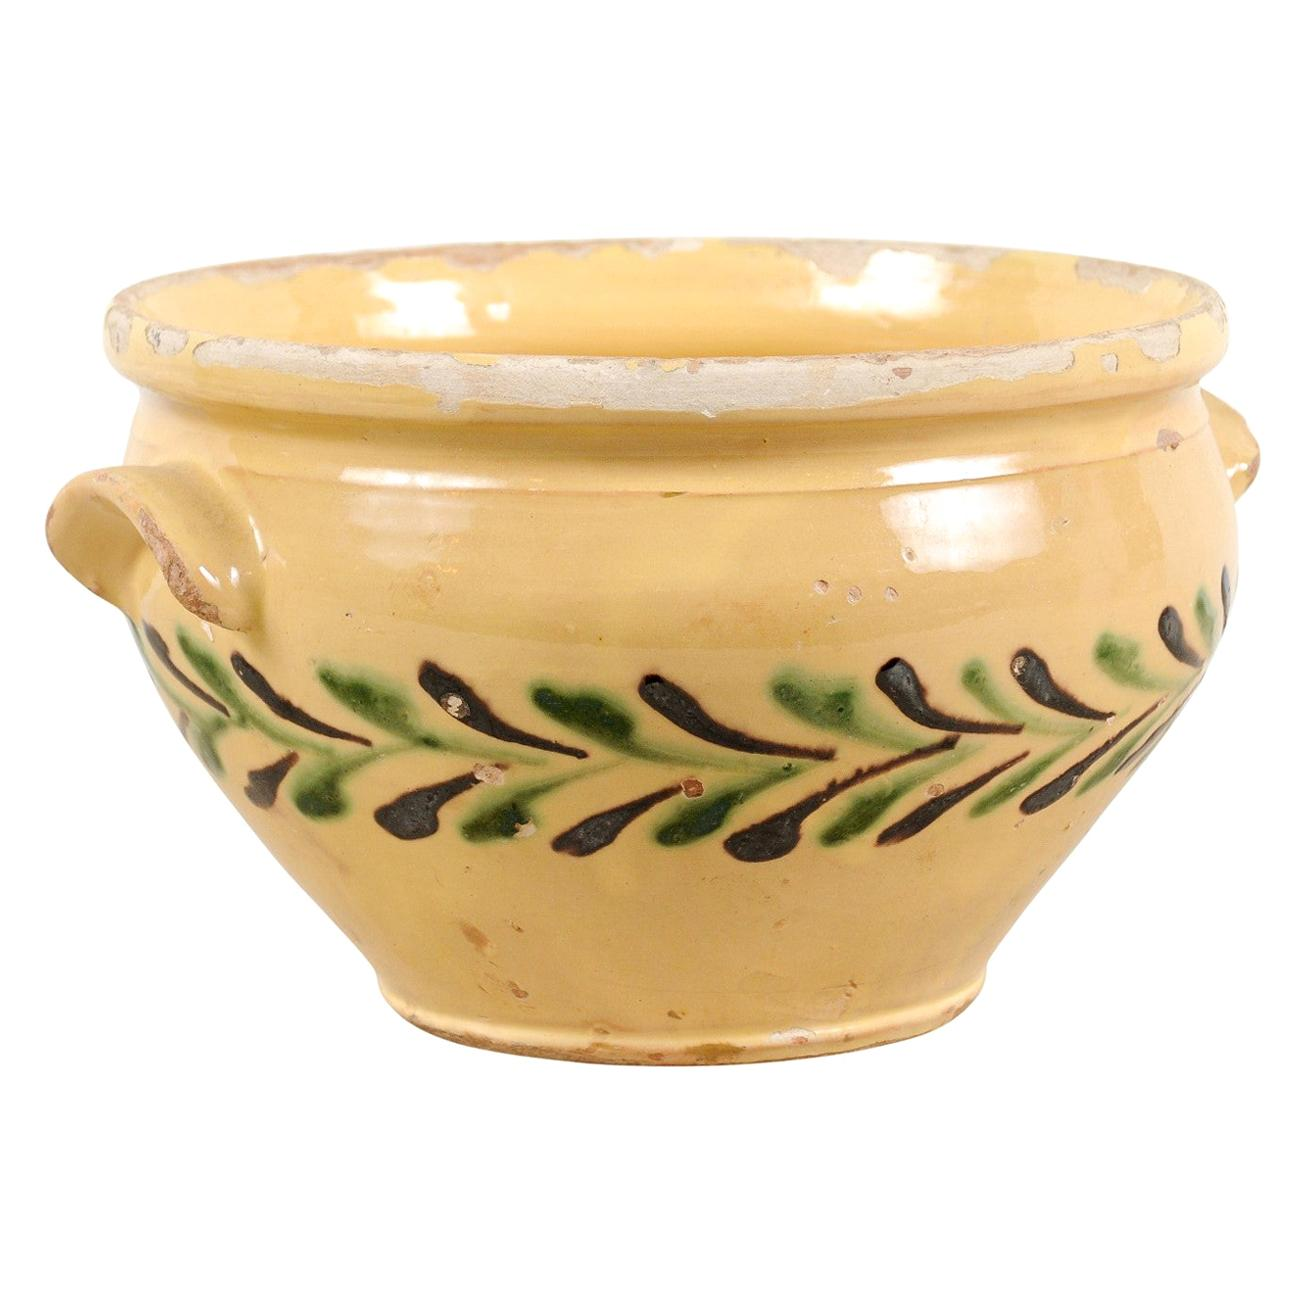 French 19th Century Jaspe Pottery Bowl with Stylized Olive Tree Motifs